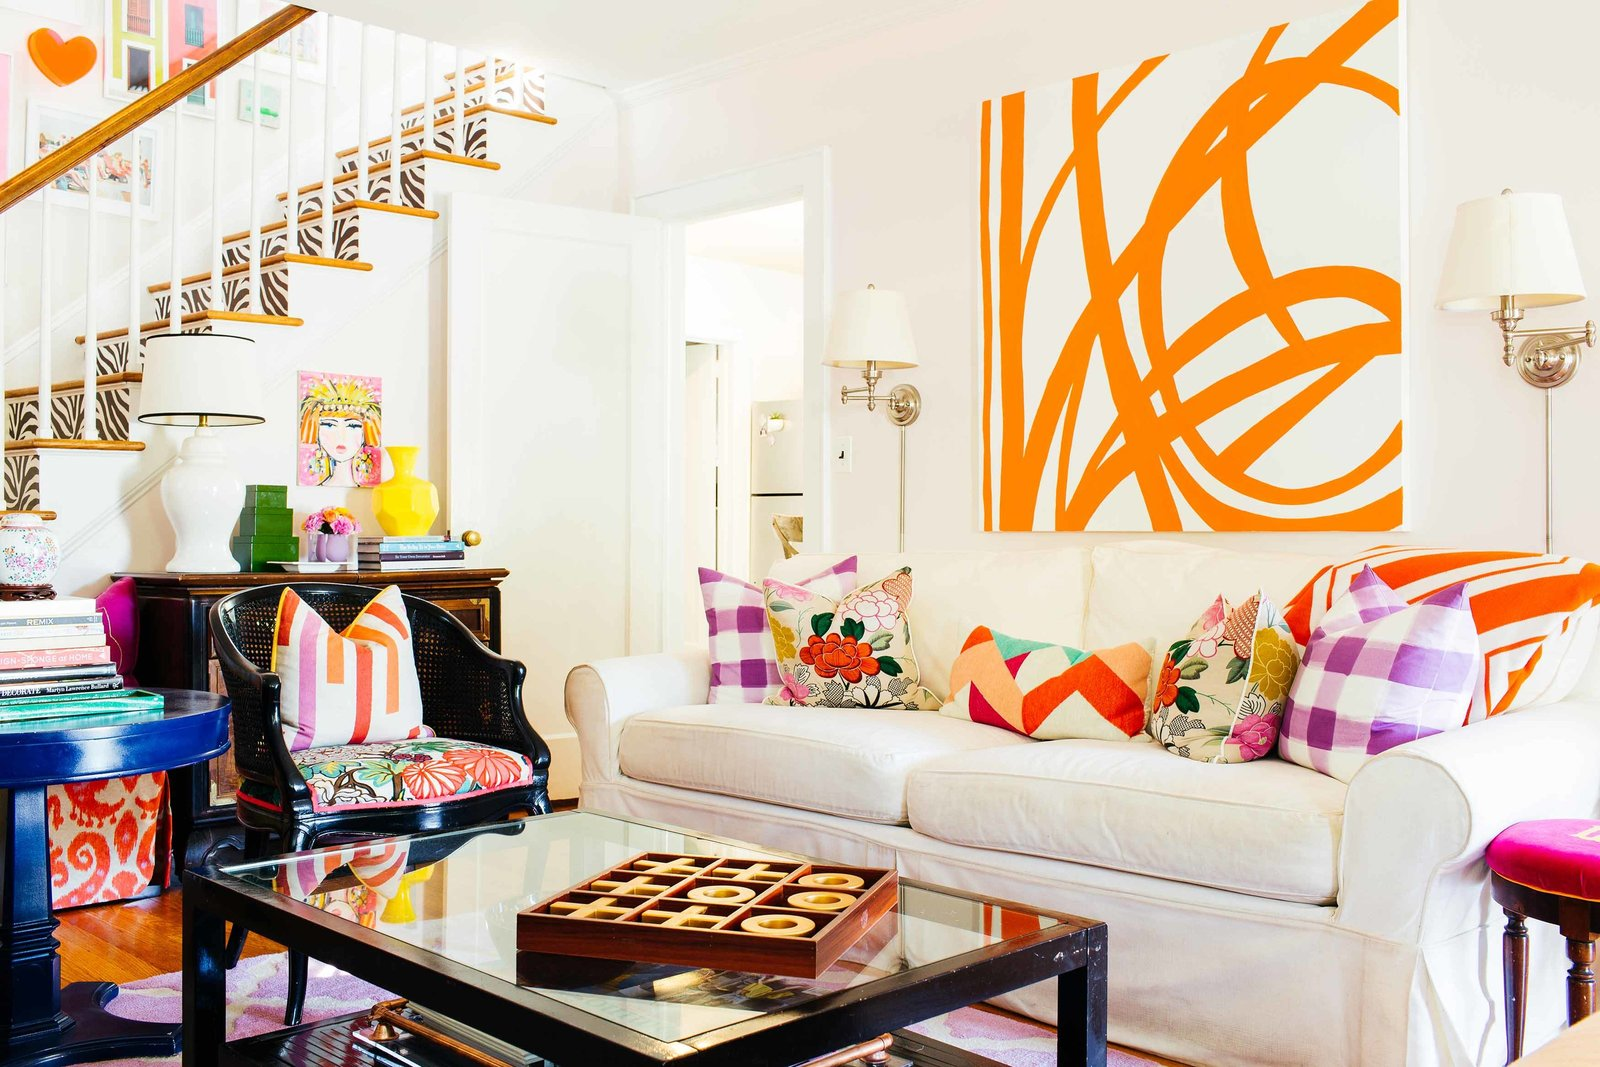 A living room with a large orange and white abstract painting.